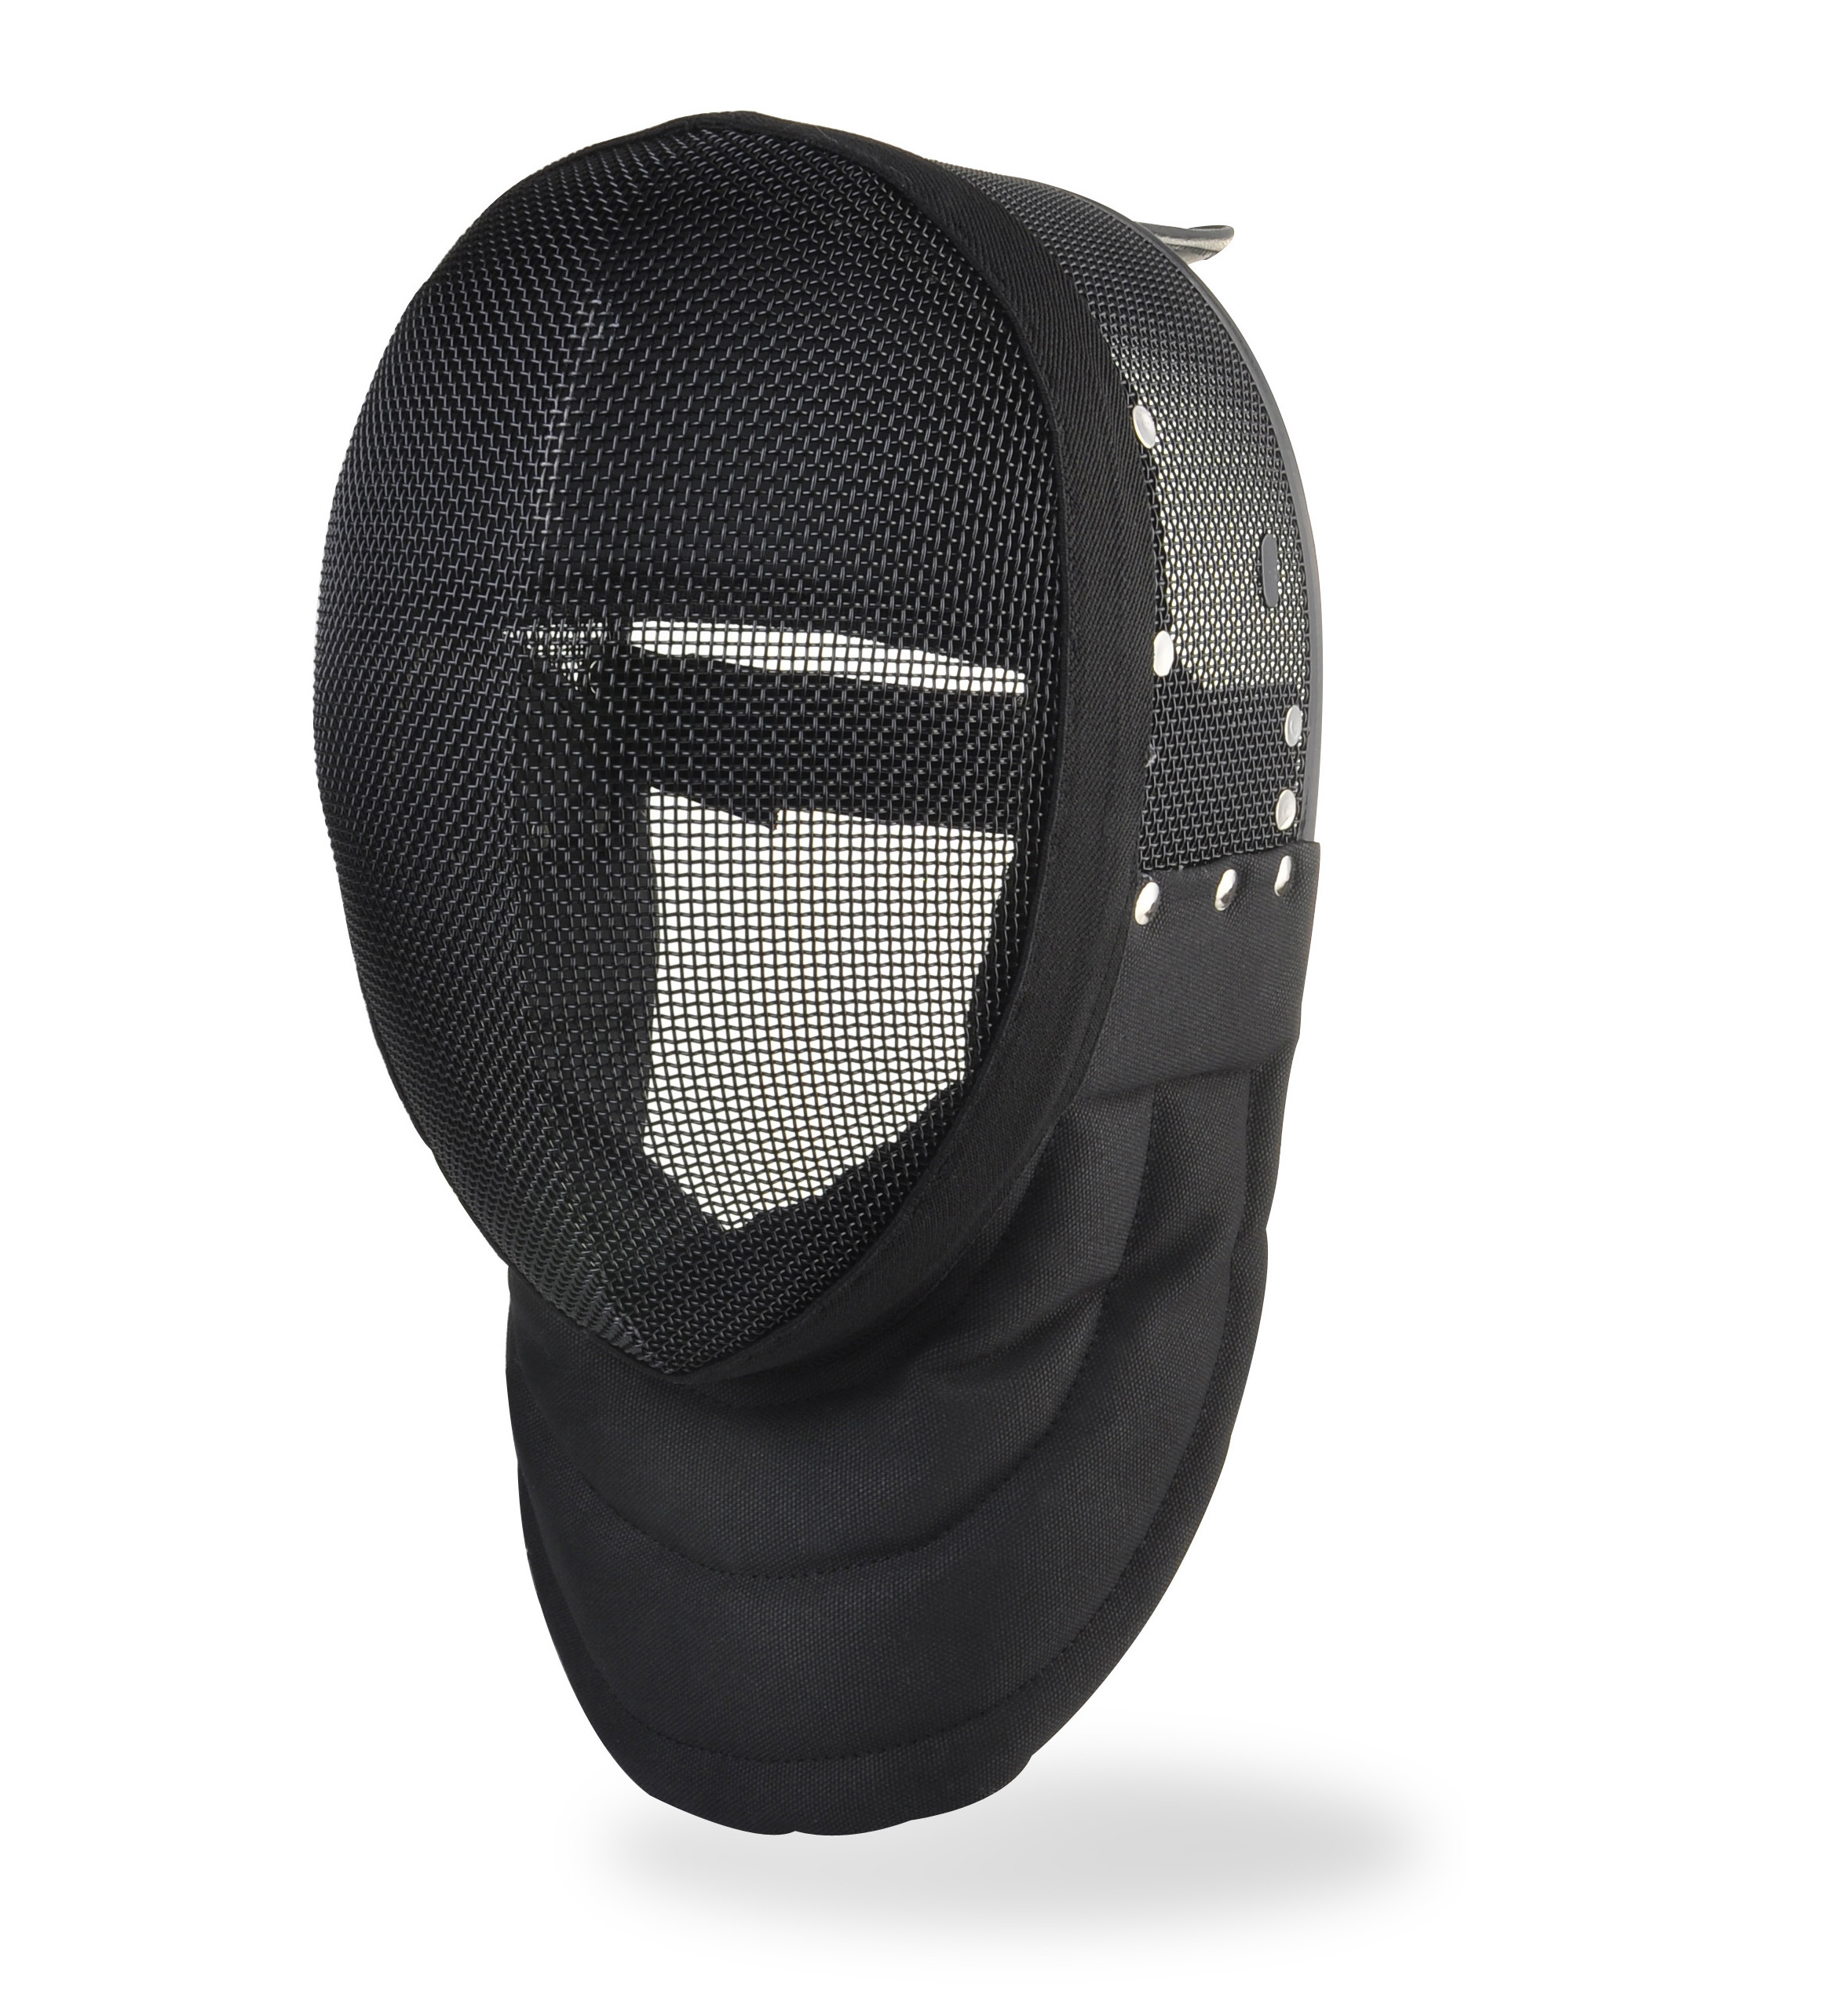 fencing equipments fencing mask coach mask 350NW removable lining CE approval